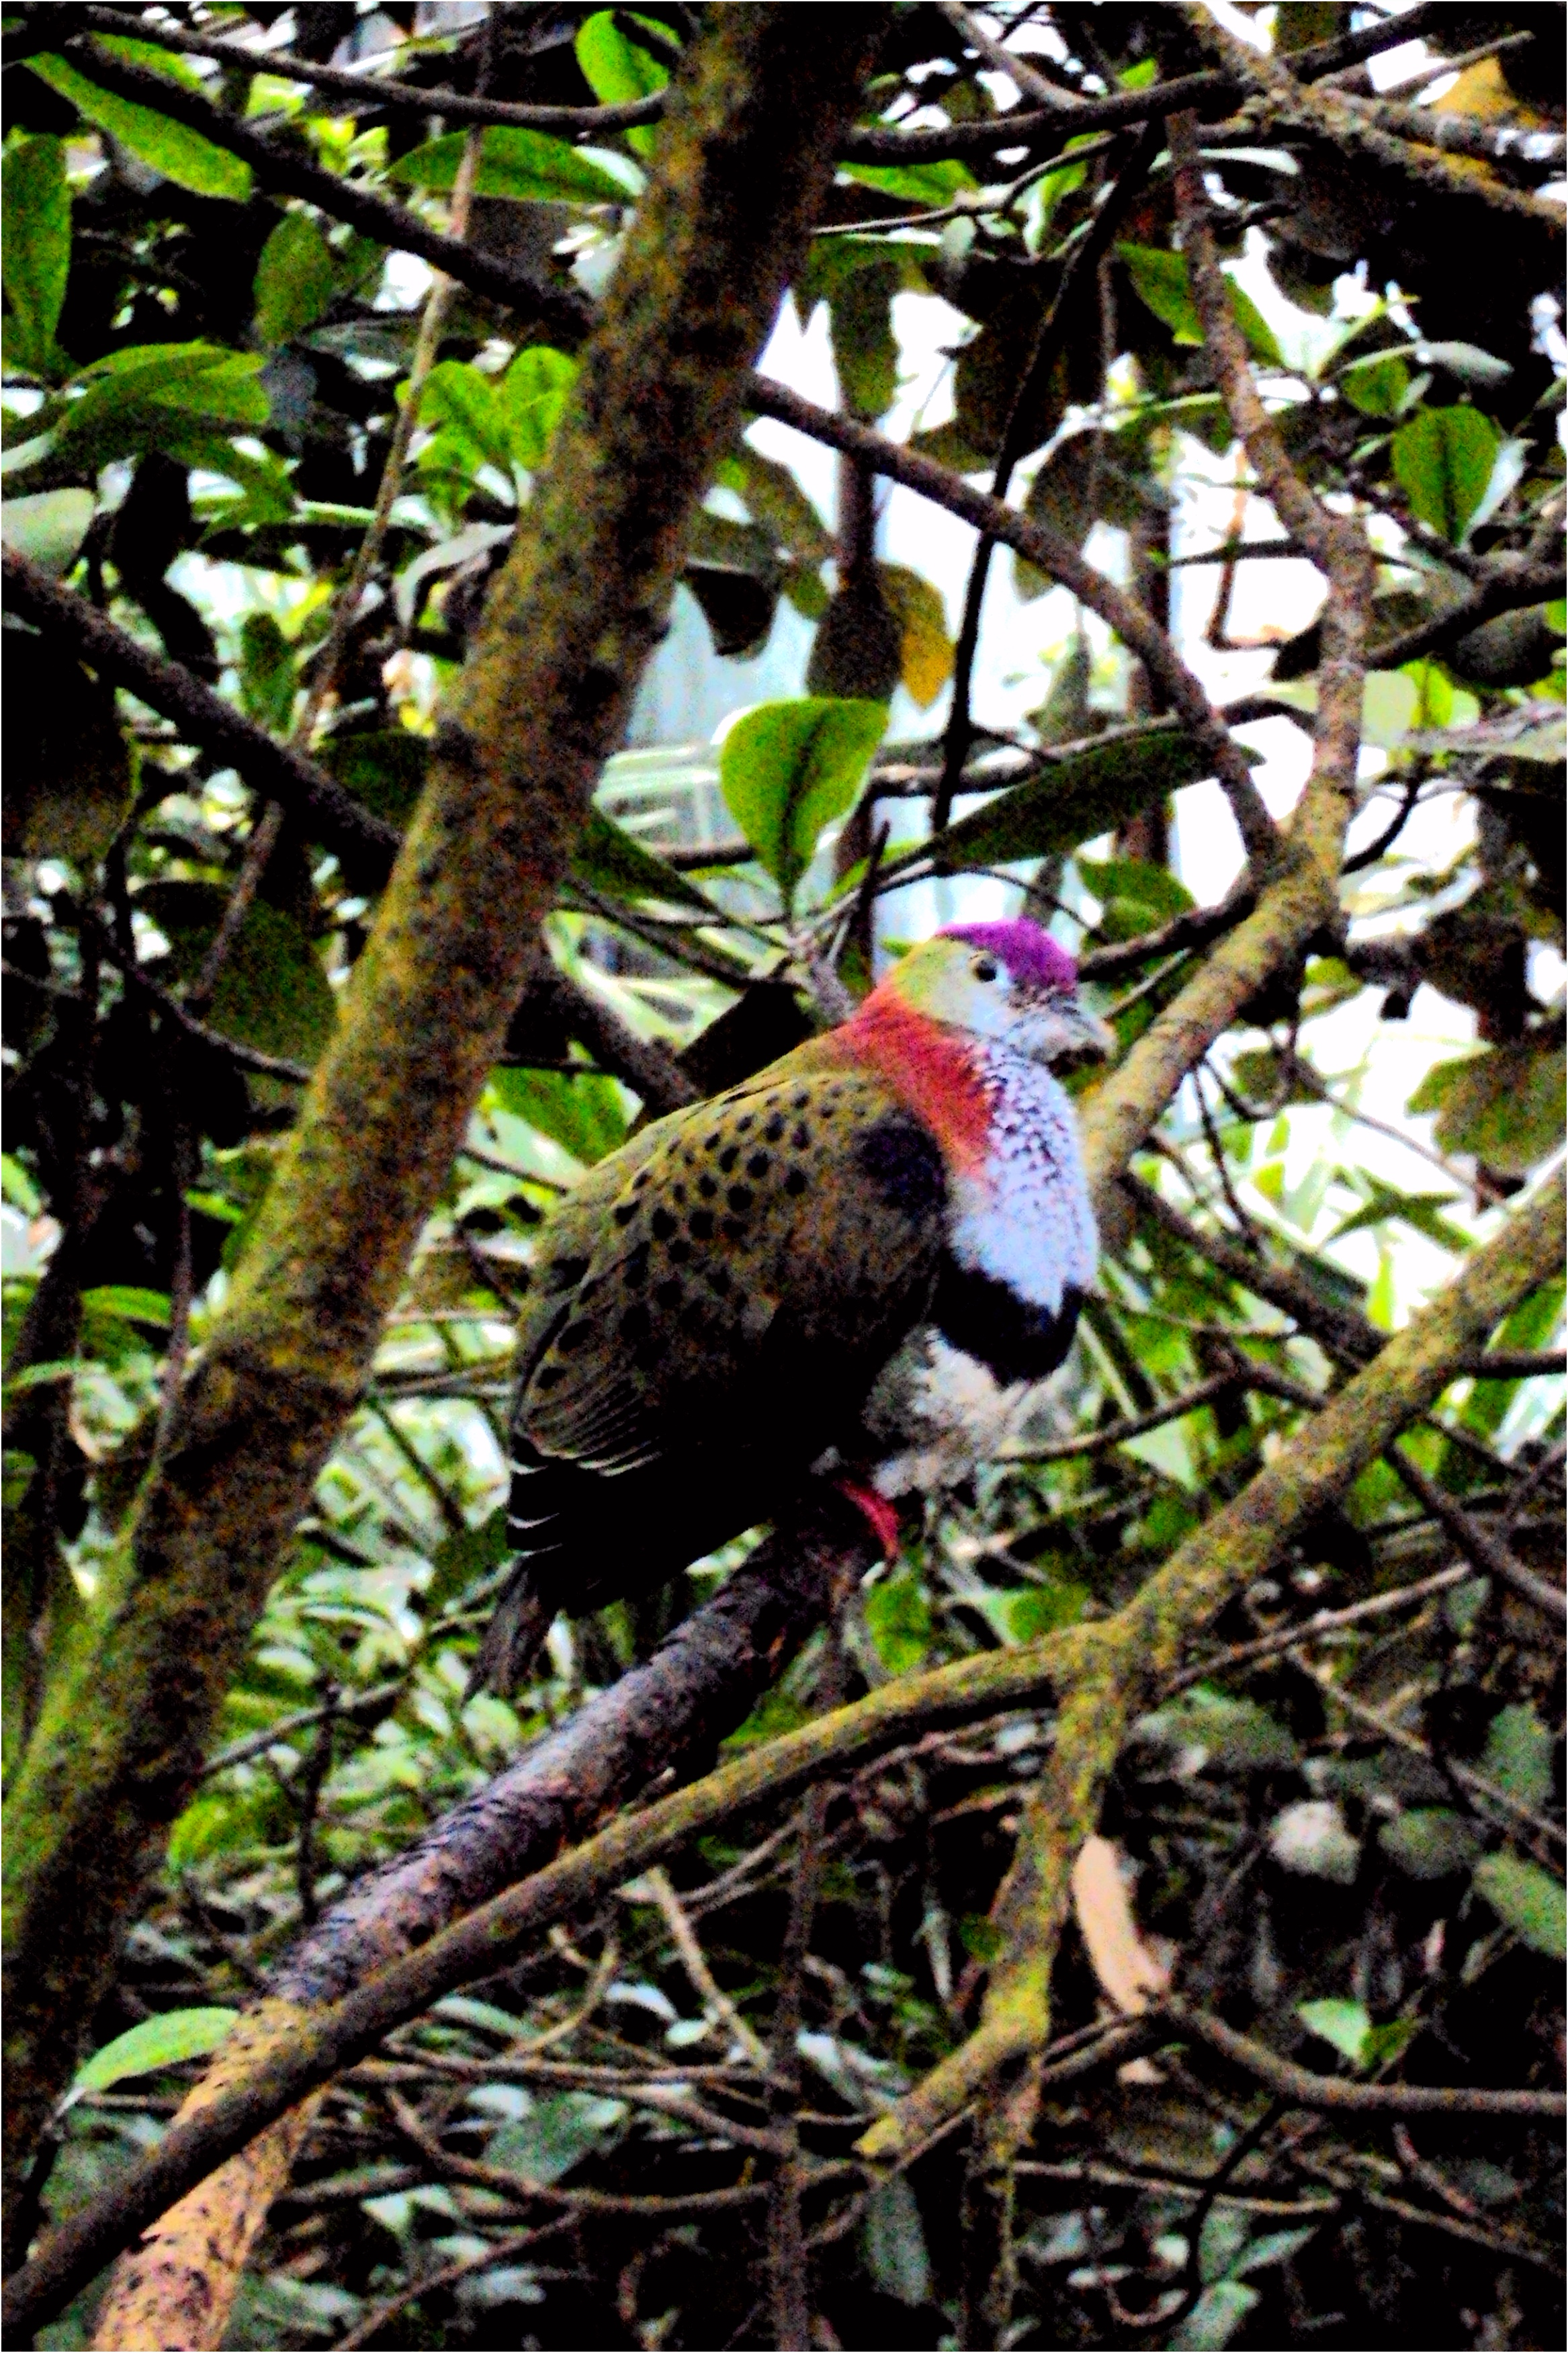 Superb fruit dove Ptilinopus superbus in the Mangrove 21 02 2015